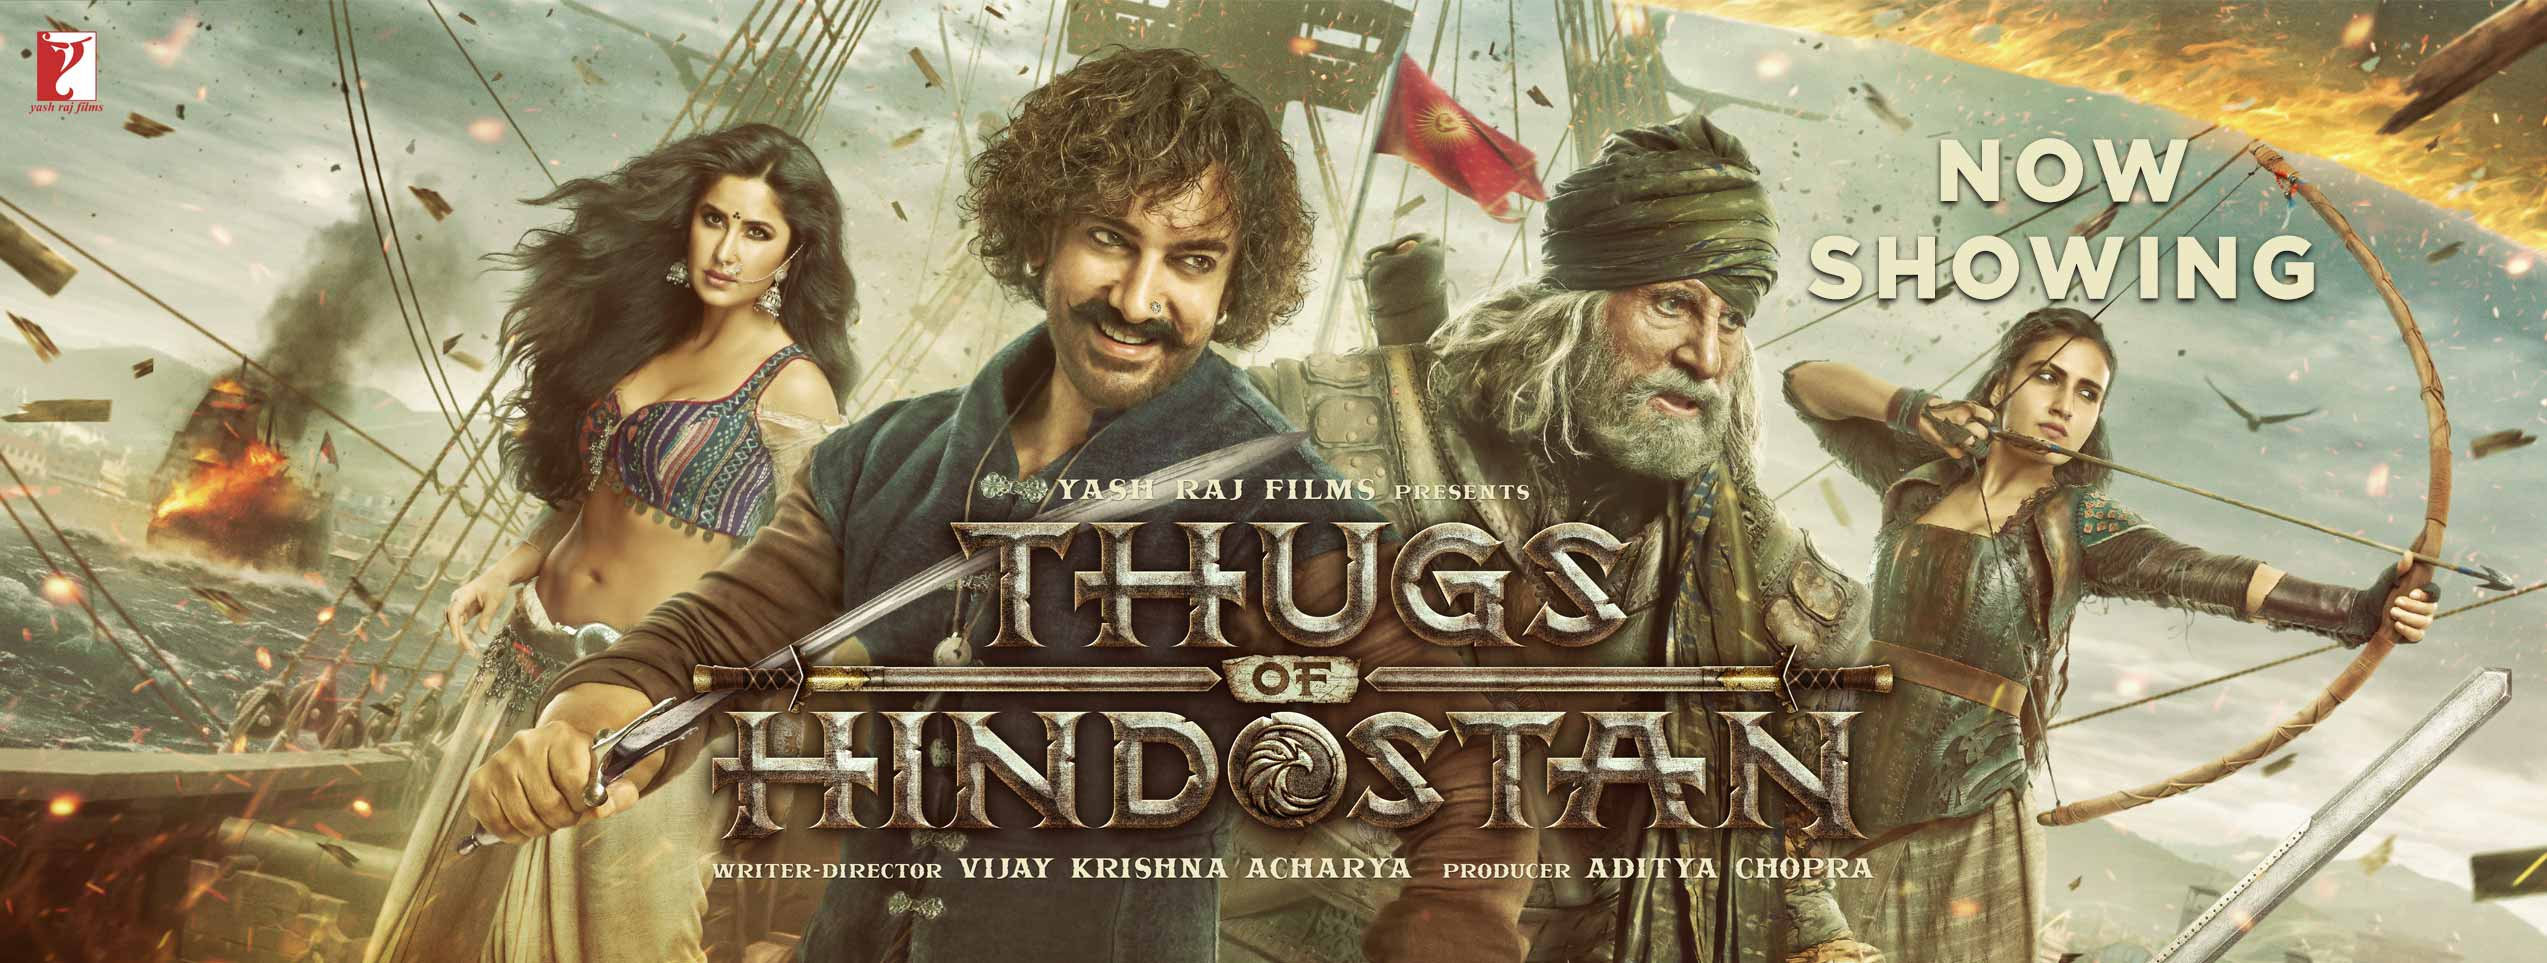 Thugs of Hindostan (2D) (PG13) (Hin)